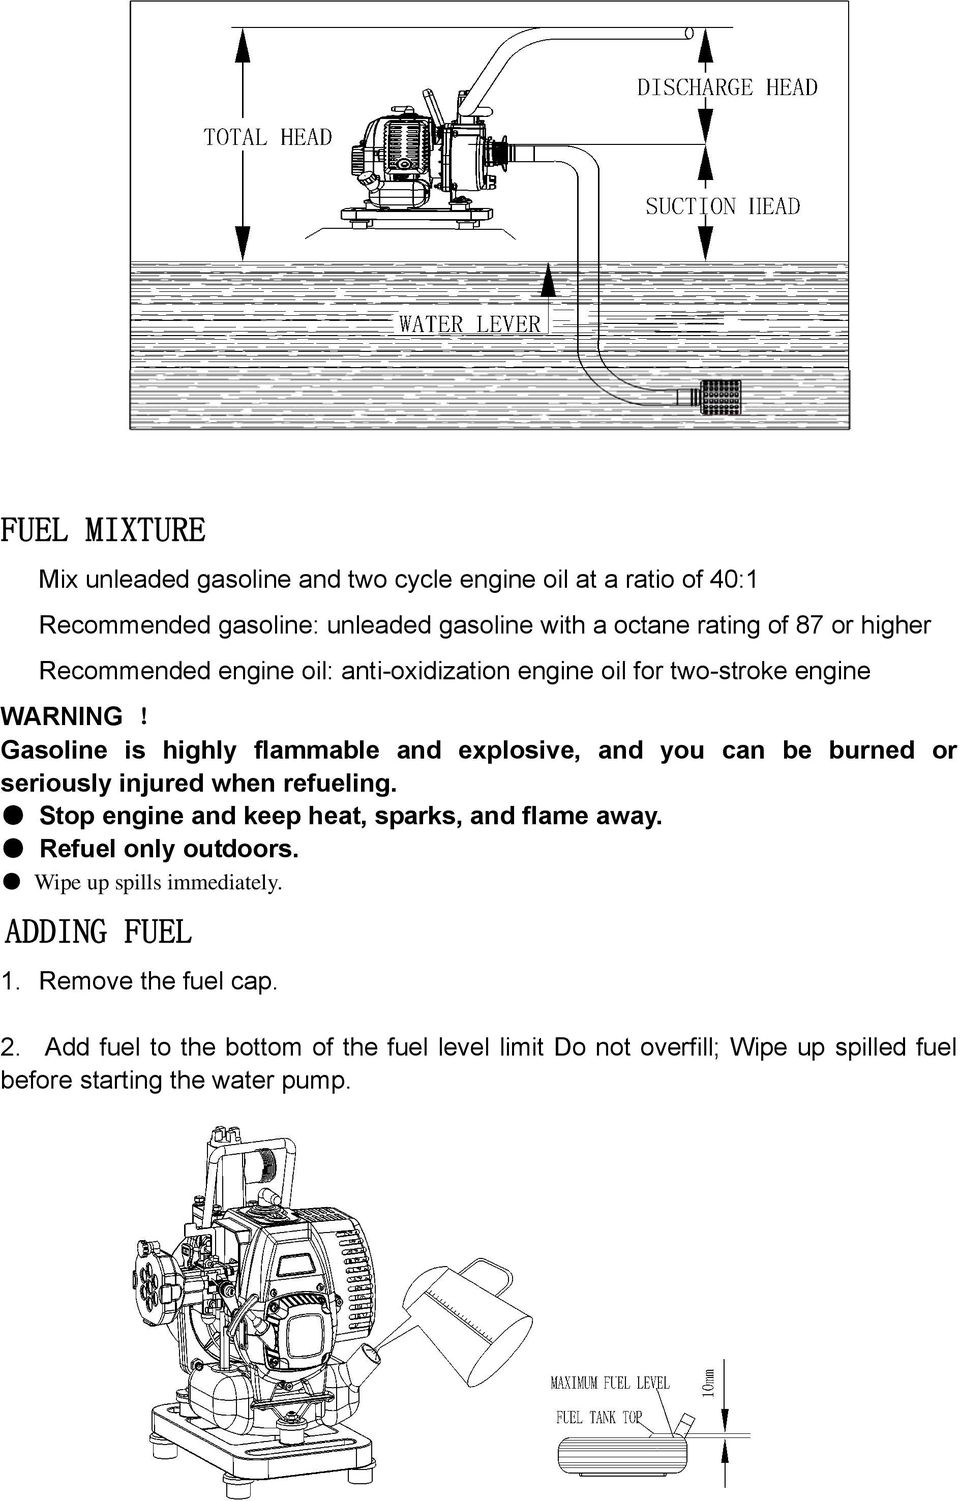 Operator S Manual Pump Model Pac25 Save This For Future 2 Cycle Engine Diagram Gasoline Is Highly Flammable And Explosive You Can Be Burned Or Seriously Injured When